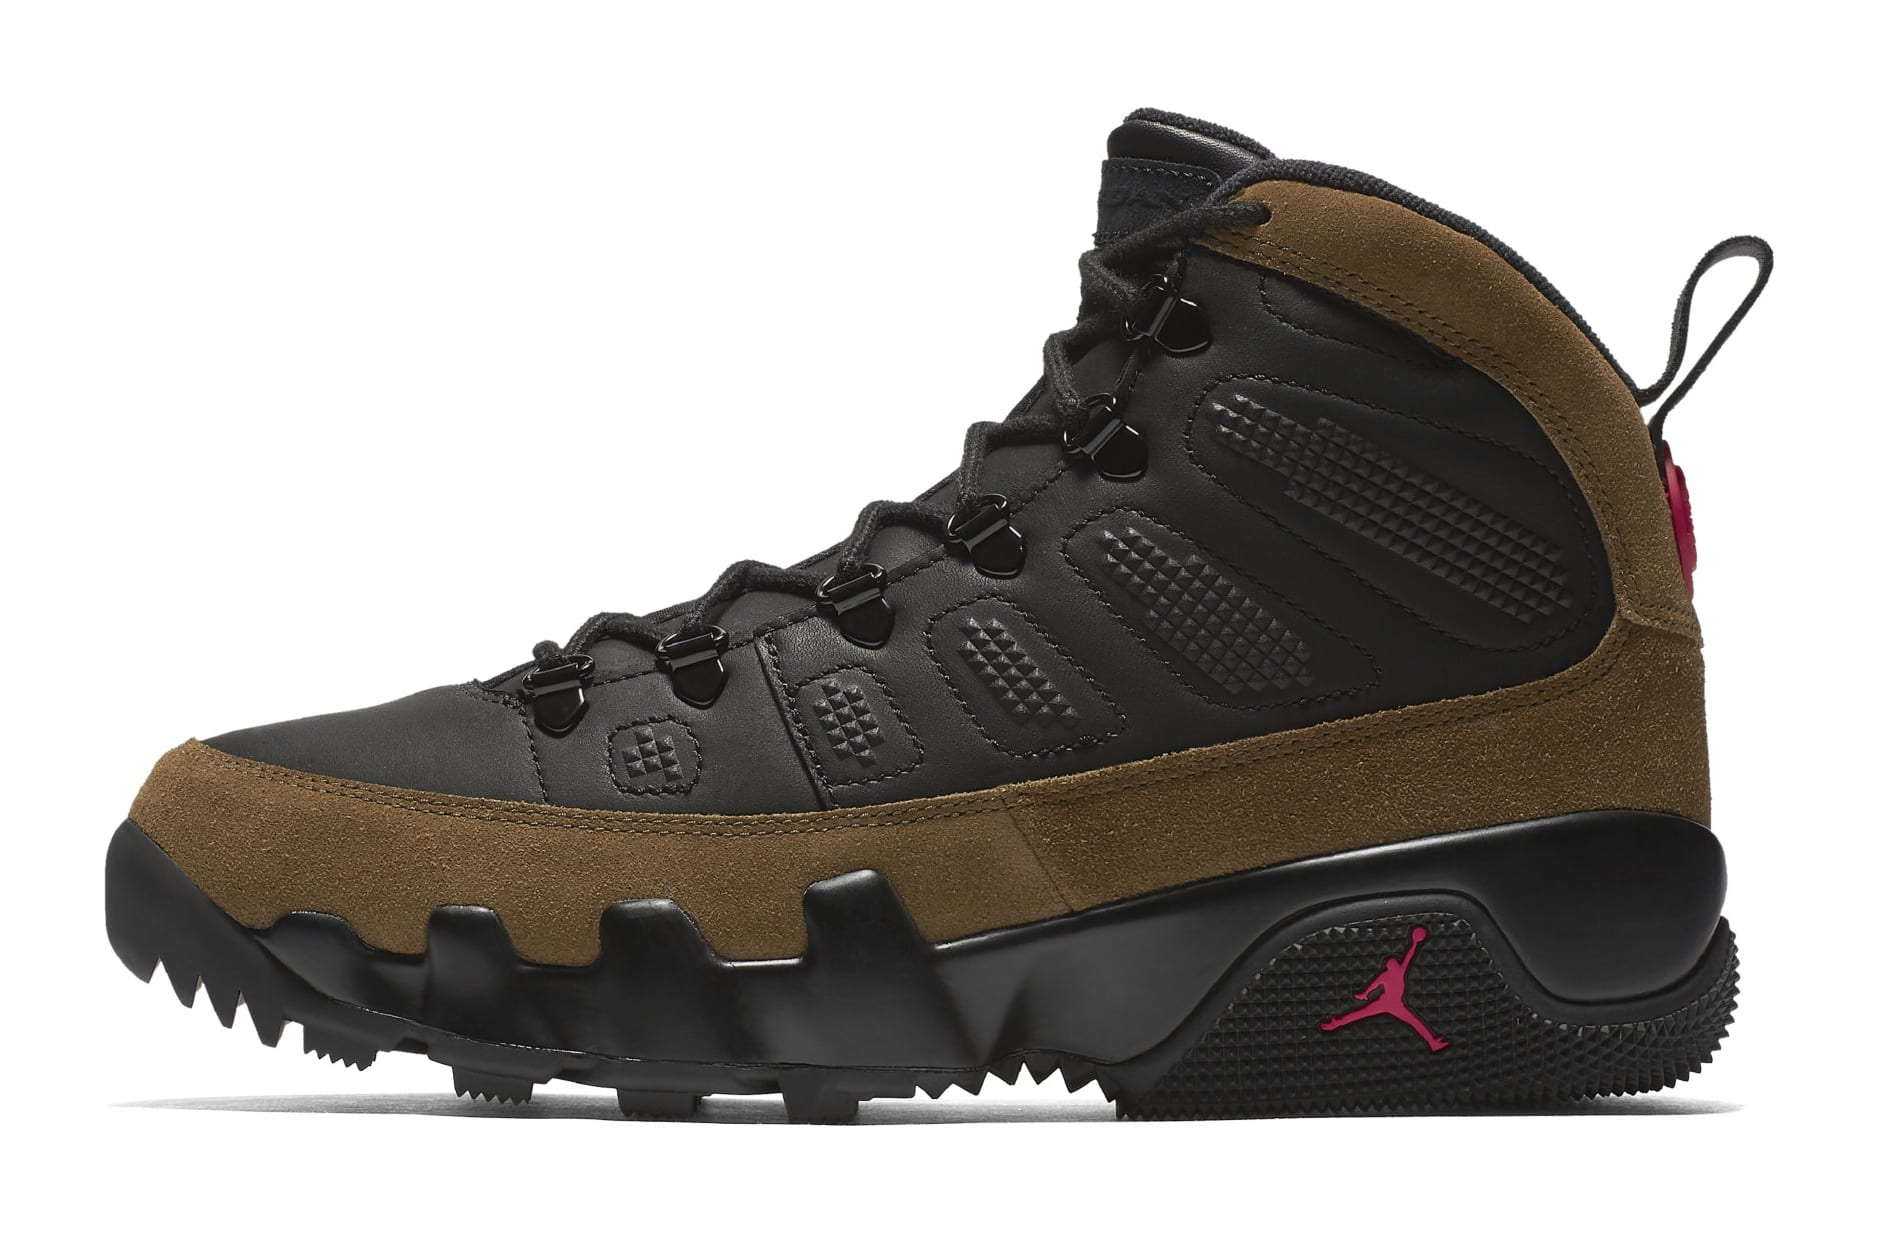 Air Jordan 9 NRG Boot 'Olive' AR4491-012 (Lateral)